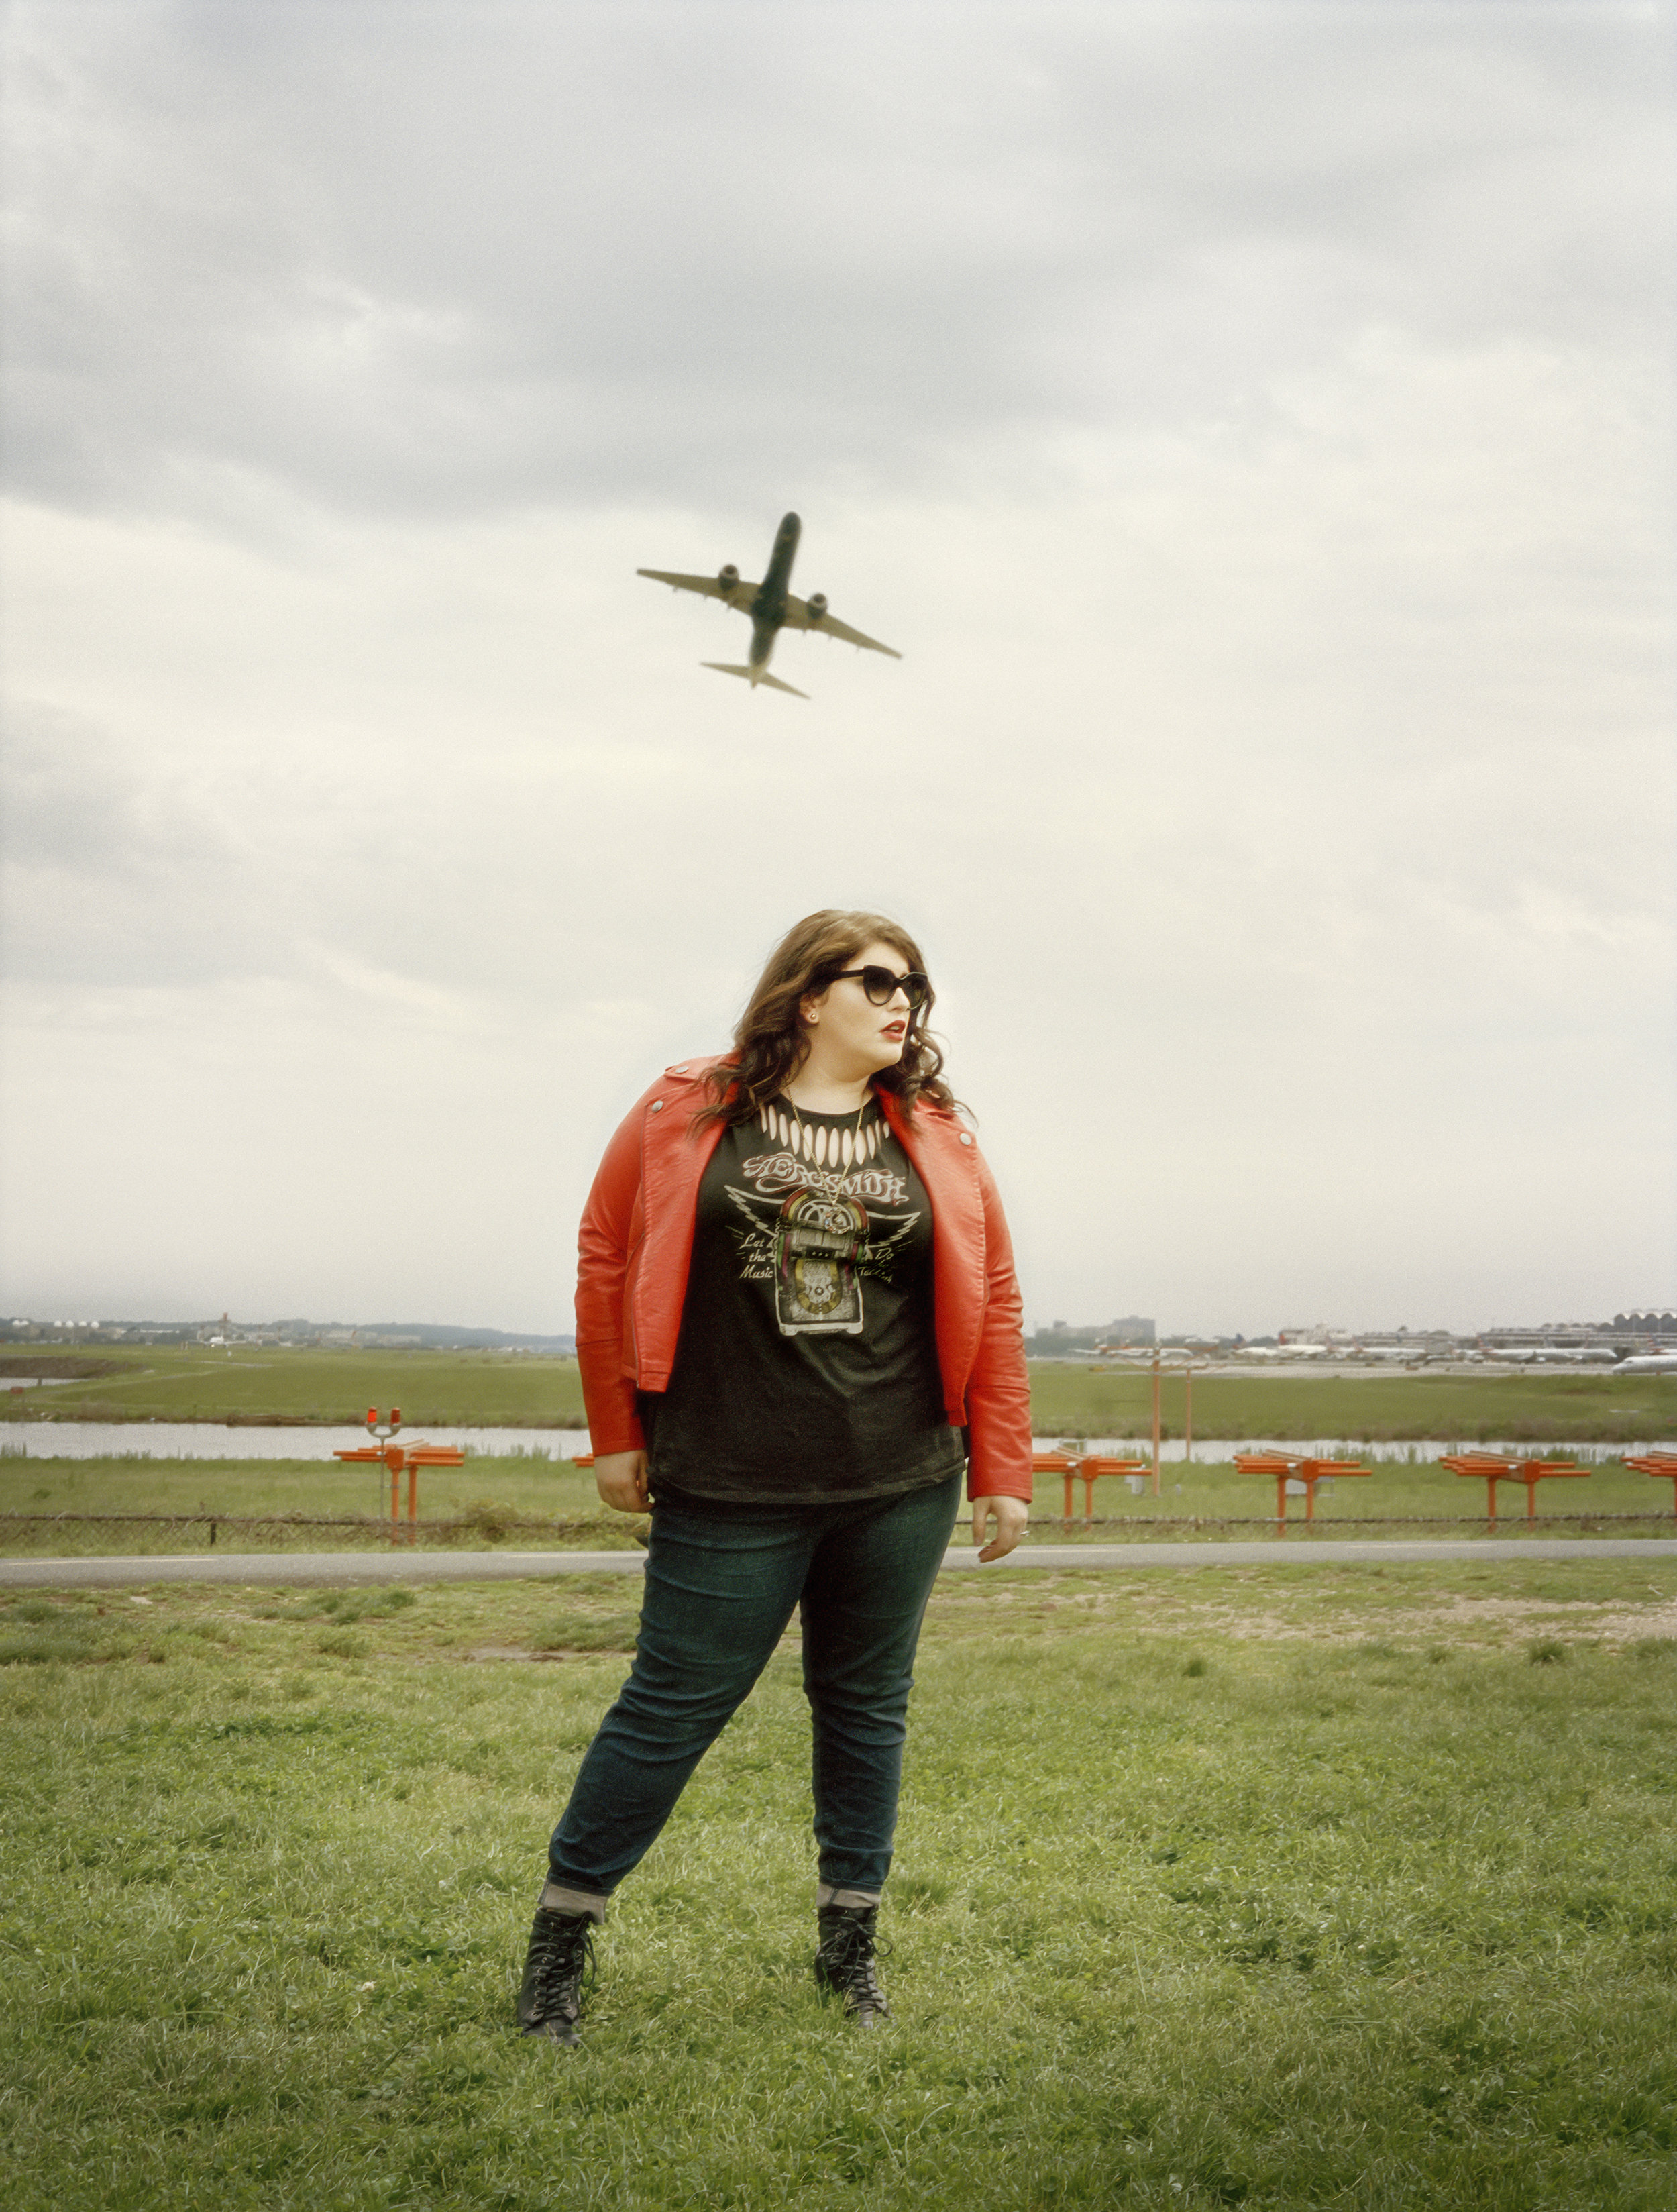 Jillian-airplane1.jpg